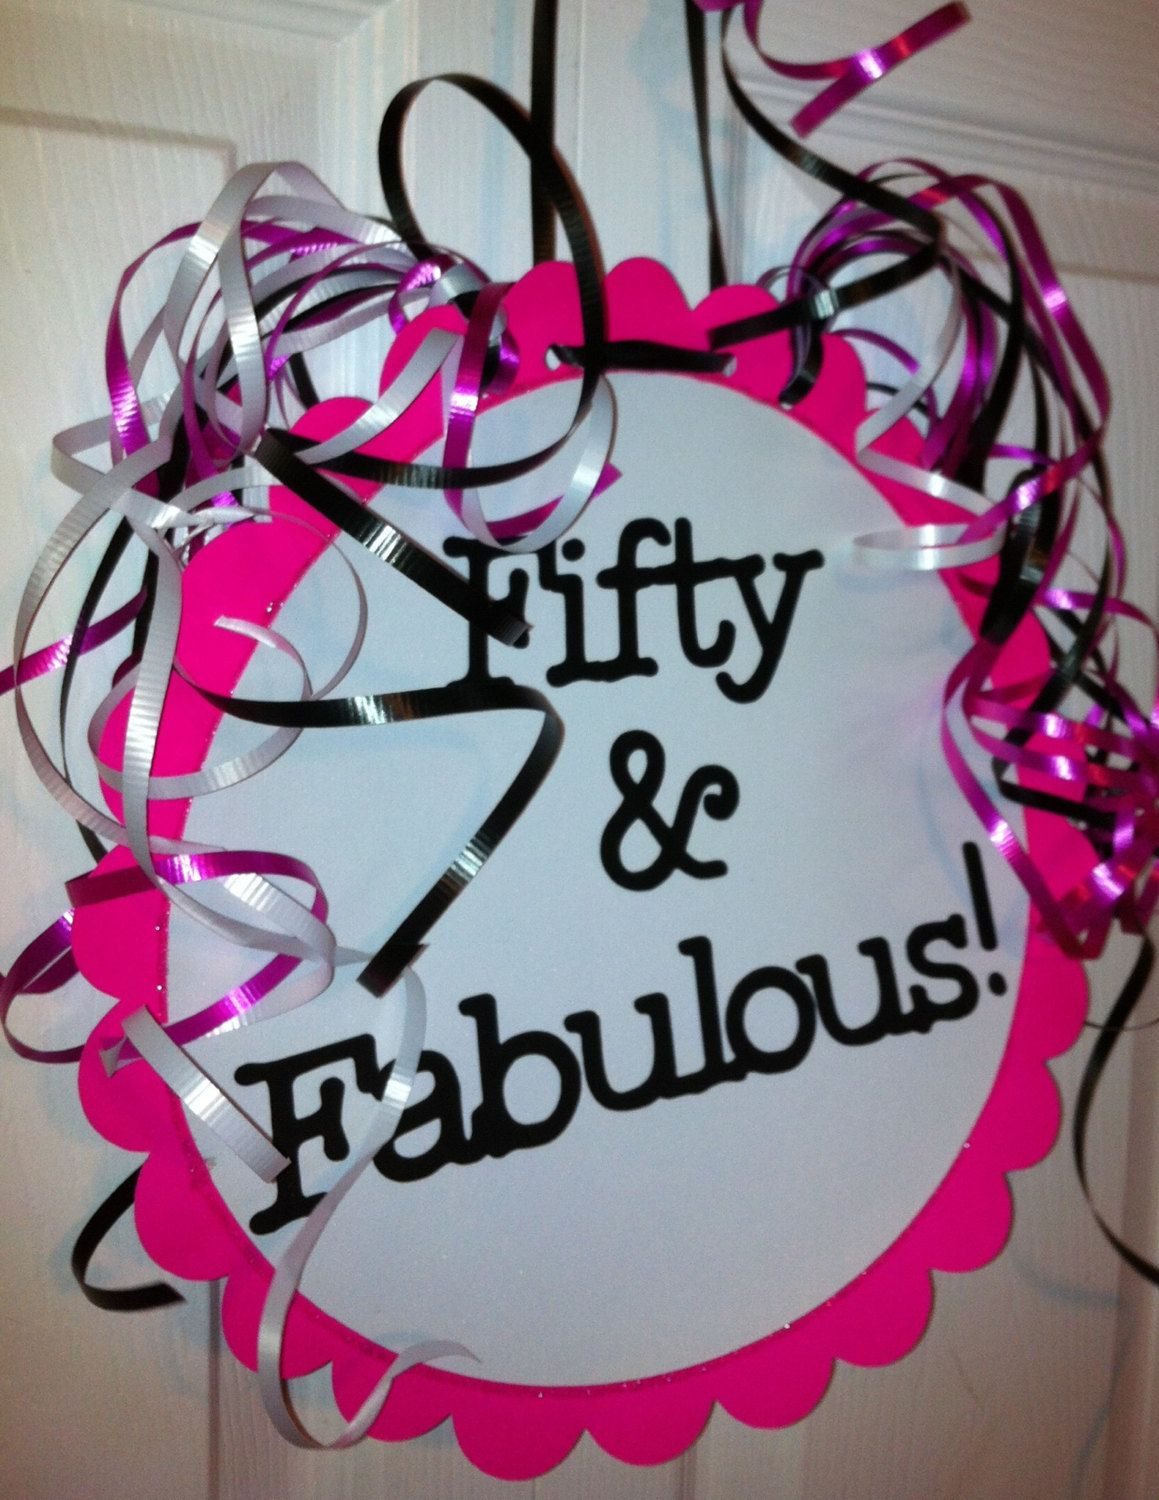 50th birthday decorations giant sign party decorations 50 and fabulous - 50th Birthday Party Decorations